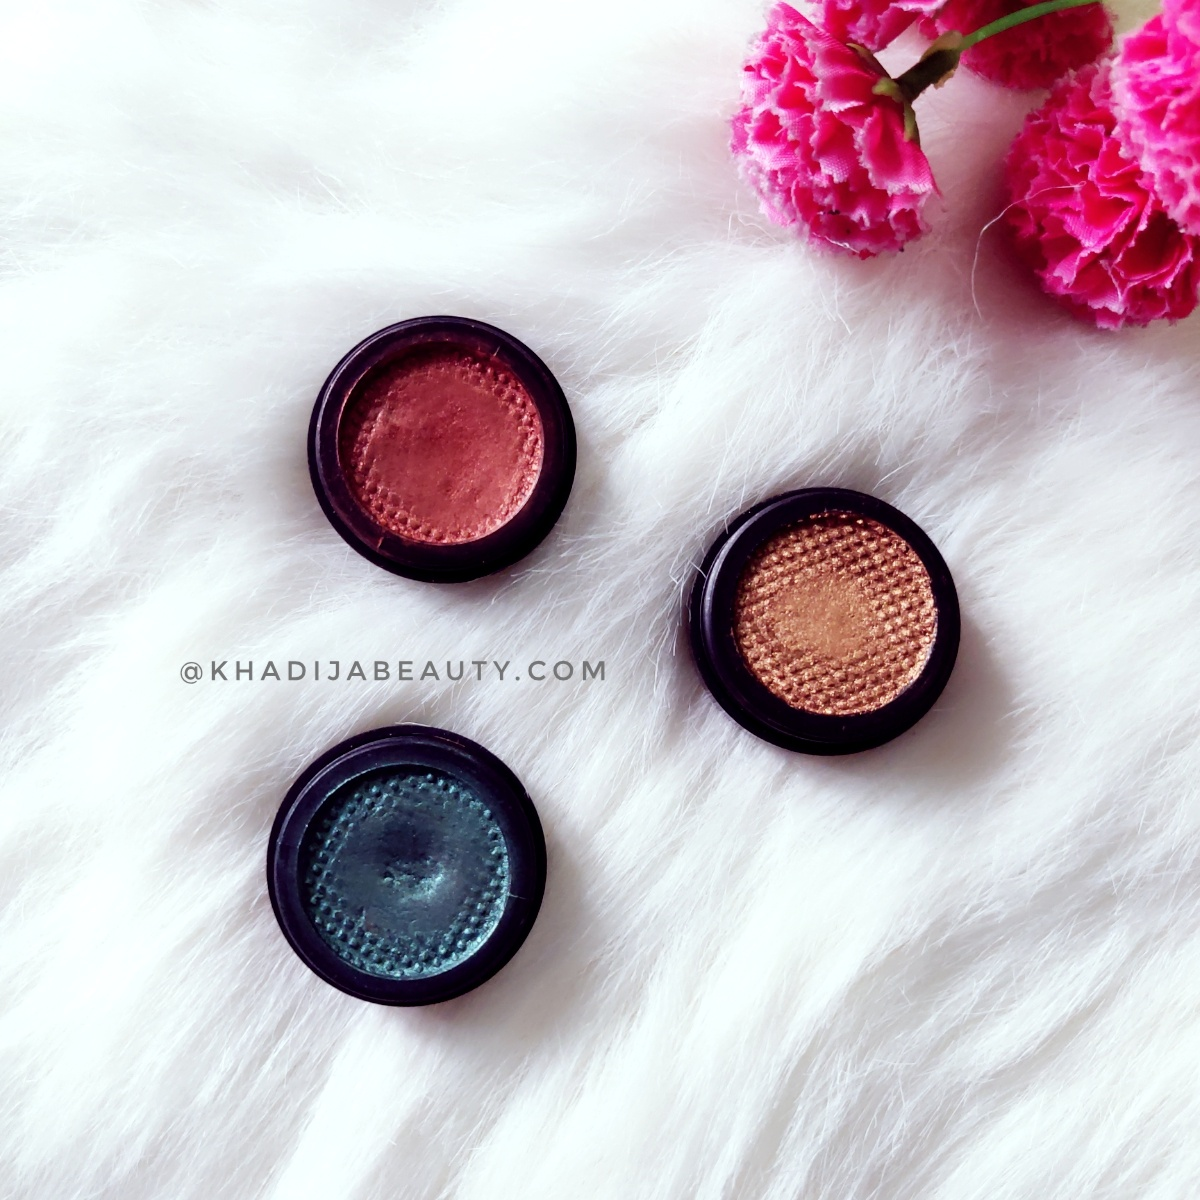 TS cosmetics Velvet eyeshadows review